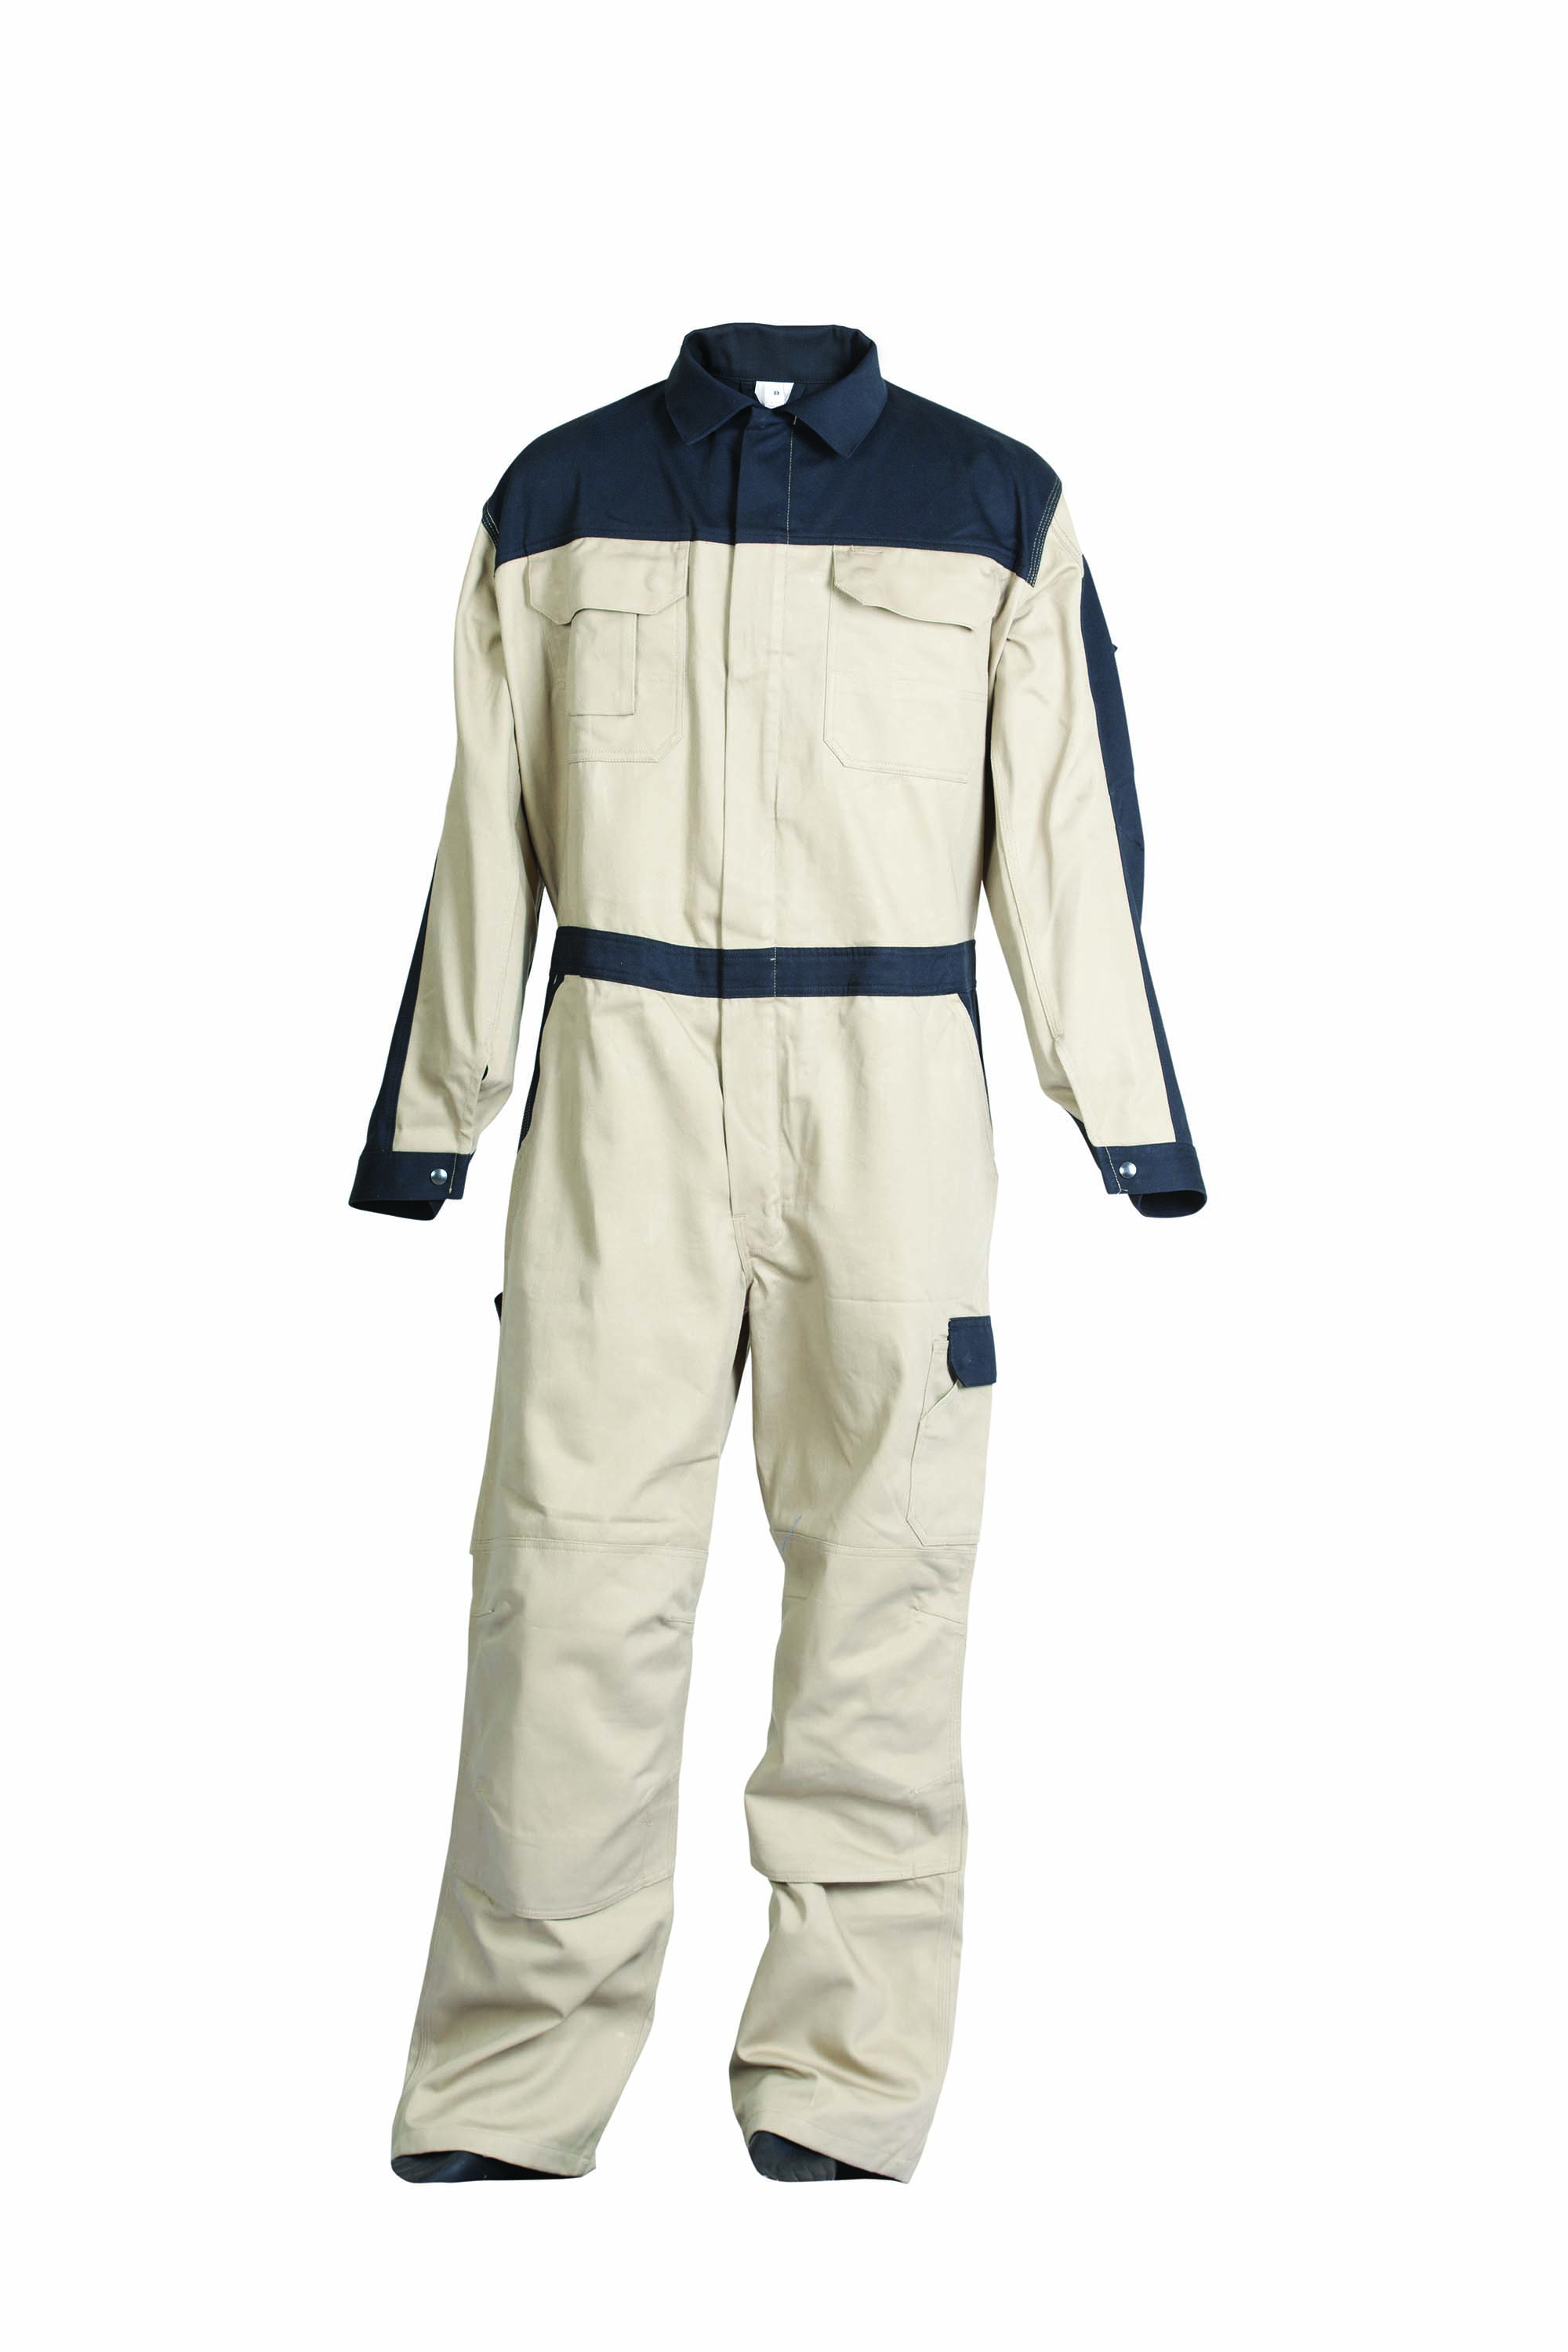 GOTLAND, Work Coverall for mallcom Body protection. It is Full sleeve coverall